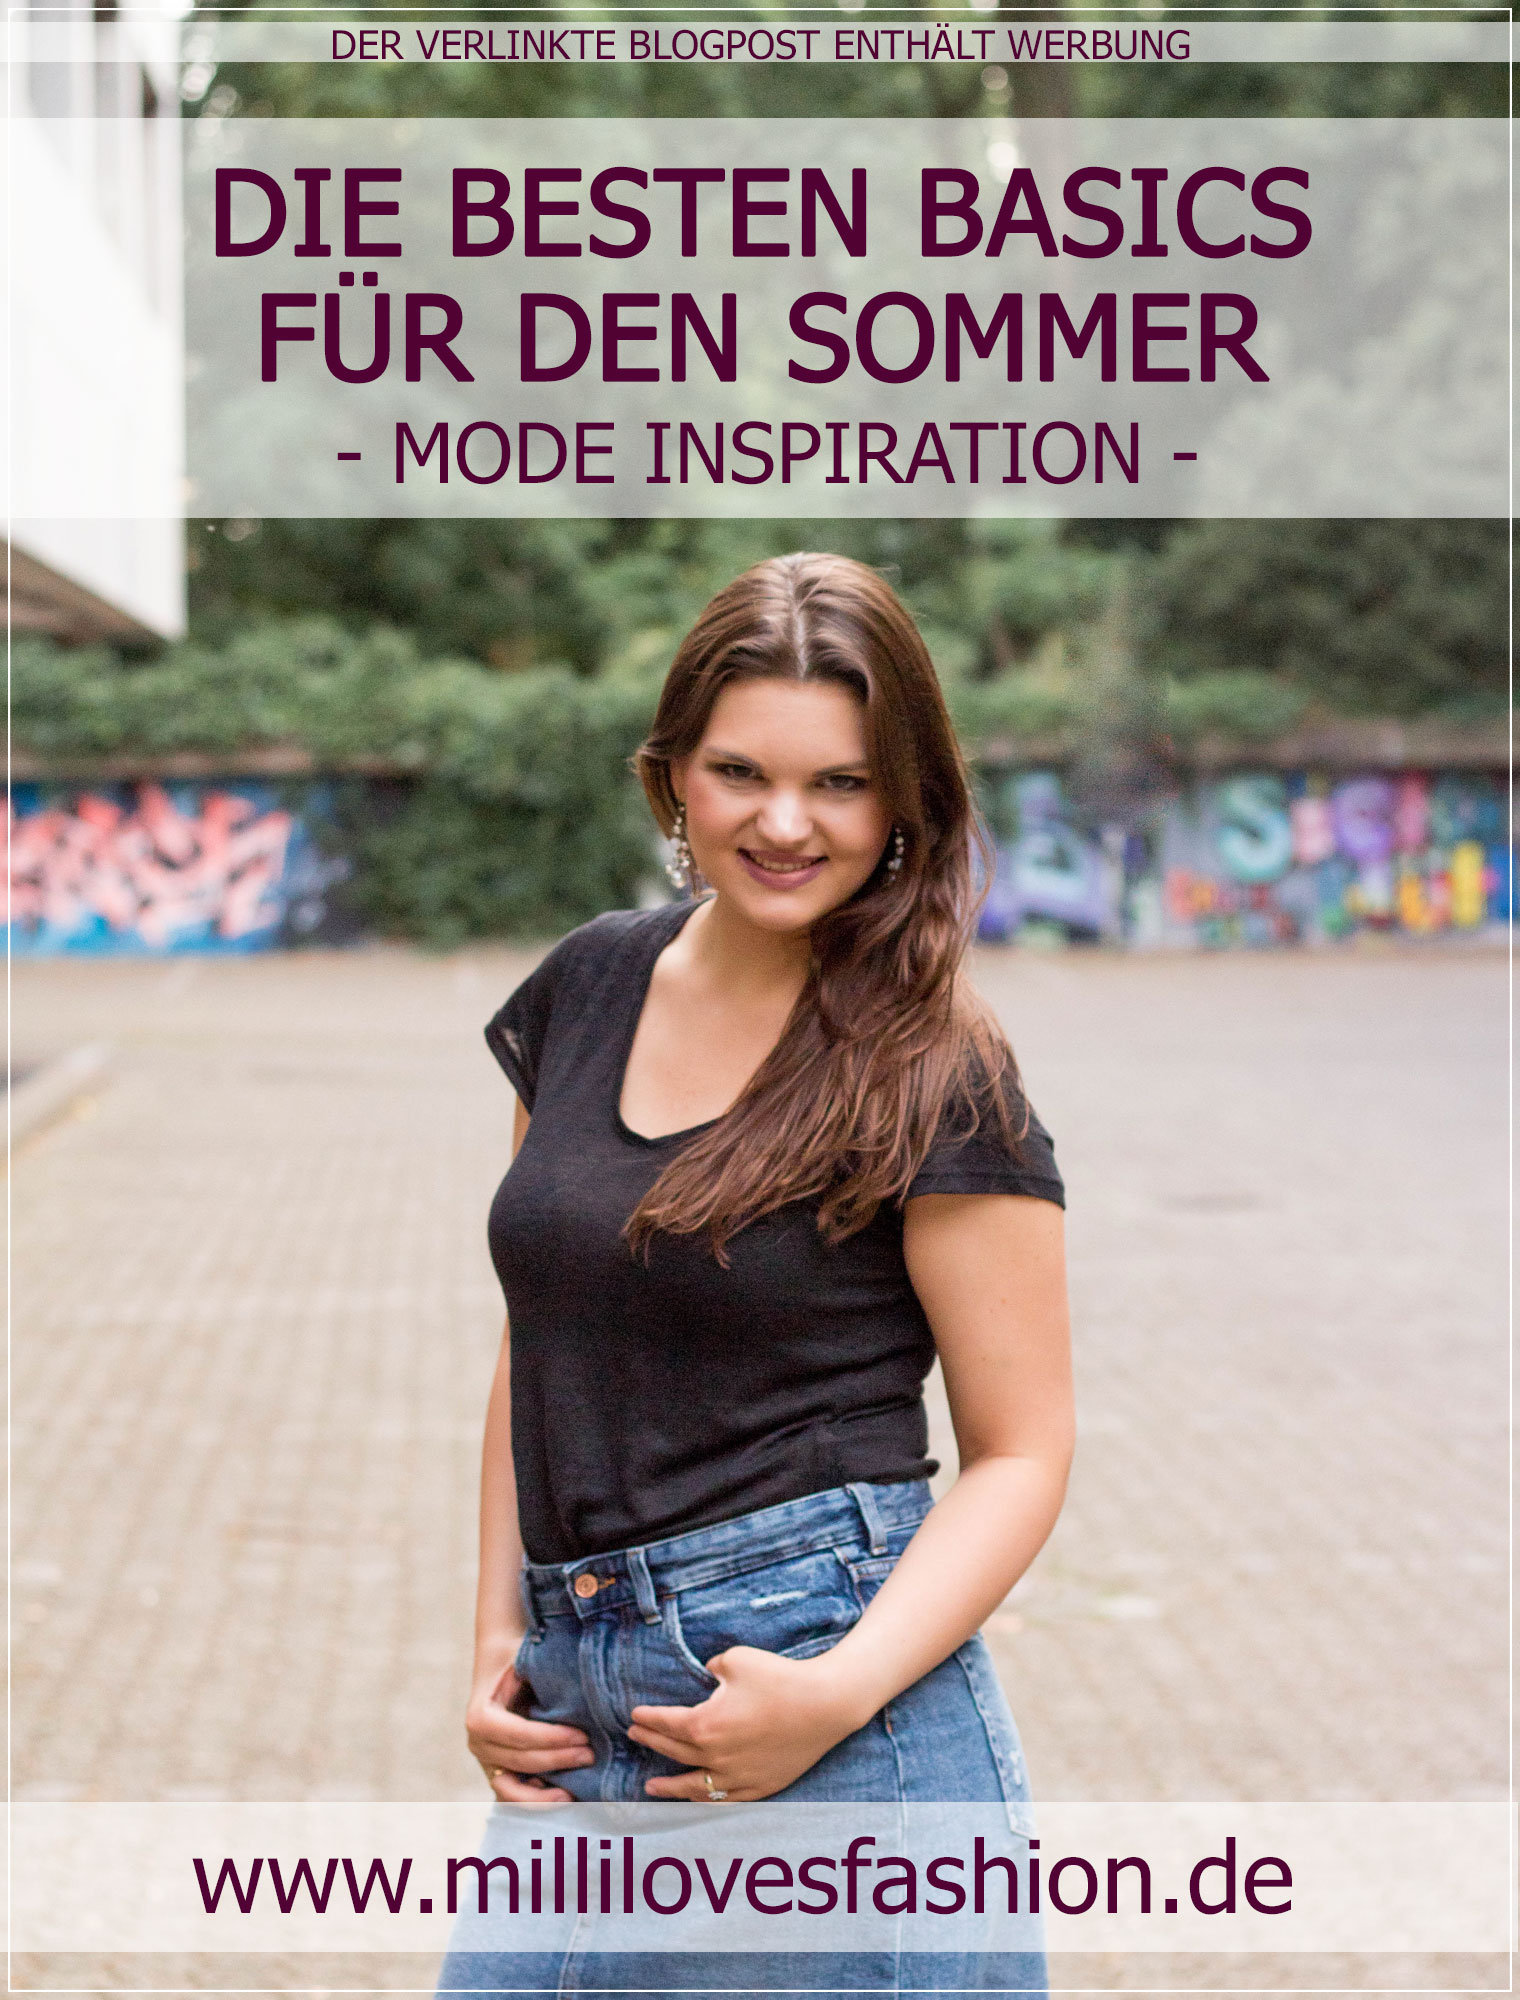 Sommer, Basics, Capsule Wardrobe, Sommeroutfit, Modetrends, Fashion, Modeblog, Ruhrgebiet, Bloggerin, Fashionblog